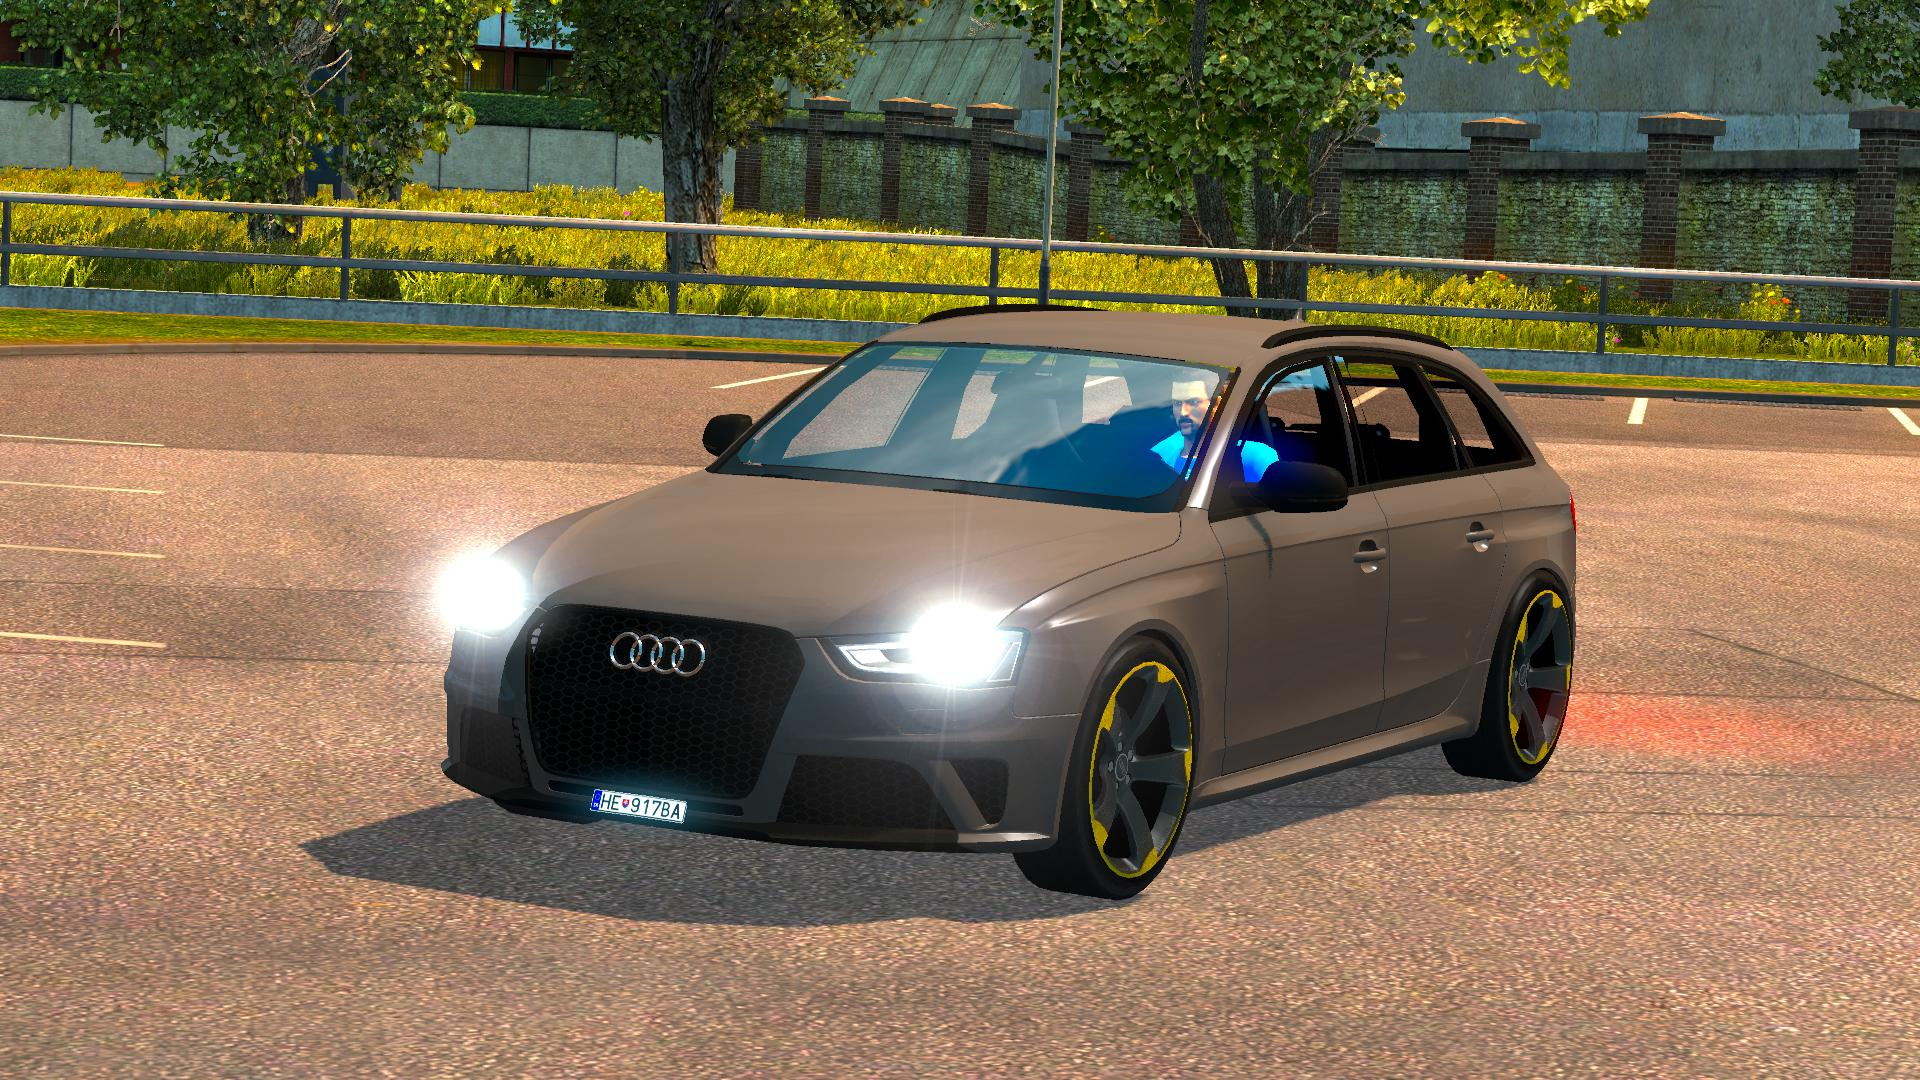 Audi Rs4 Updated Ets2 Mods Euro Truck Simulator 2 Mods Ets2mods Lt